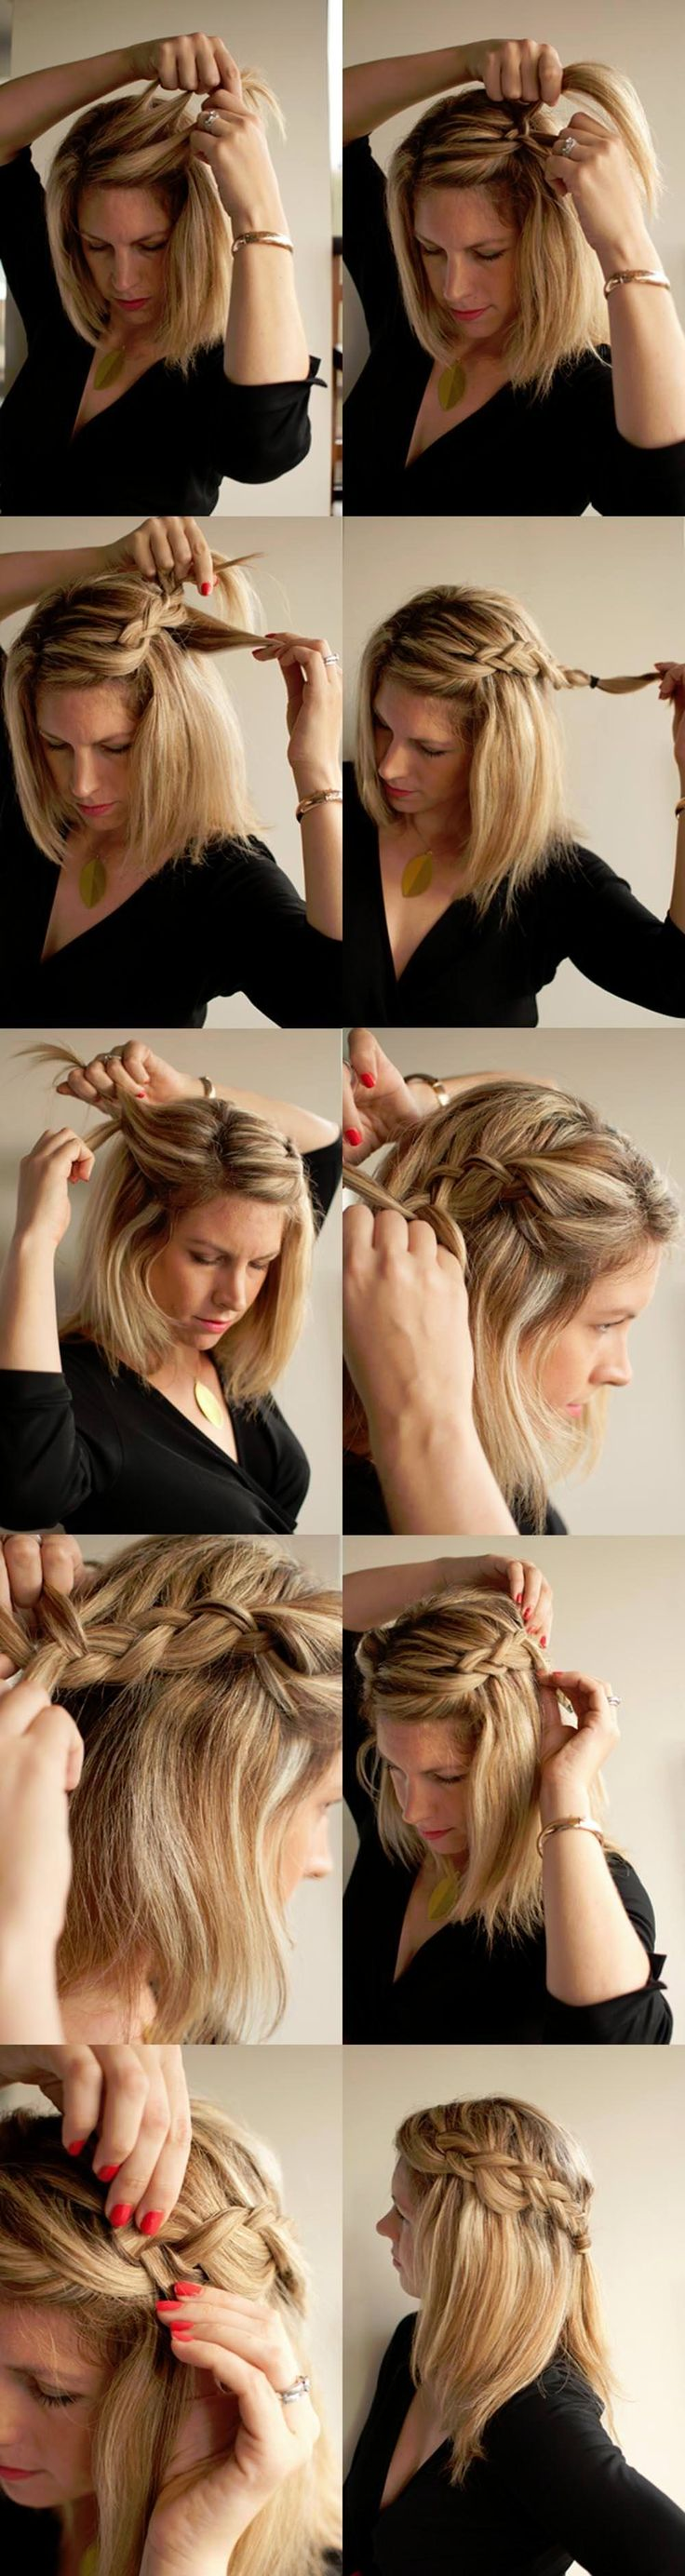 48 best Hairstyles images on Pinterest